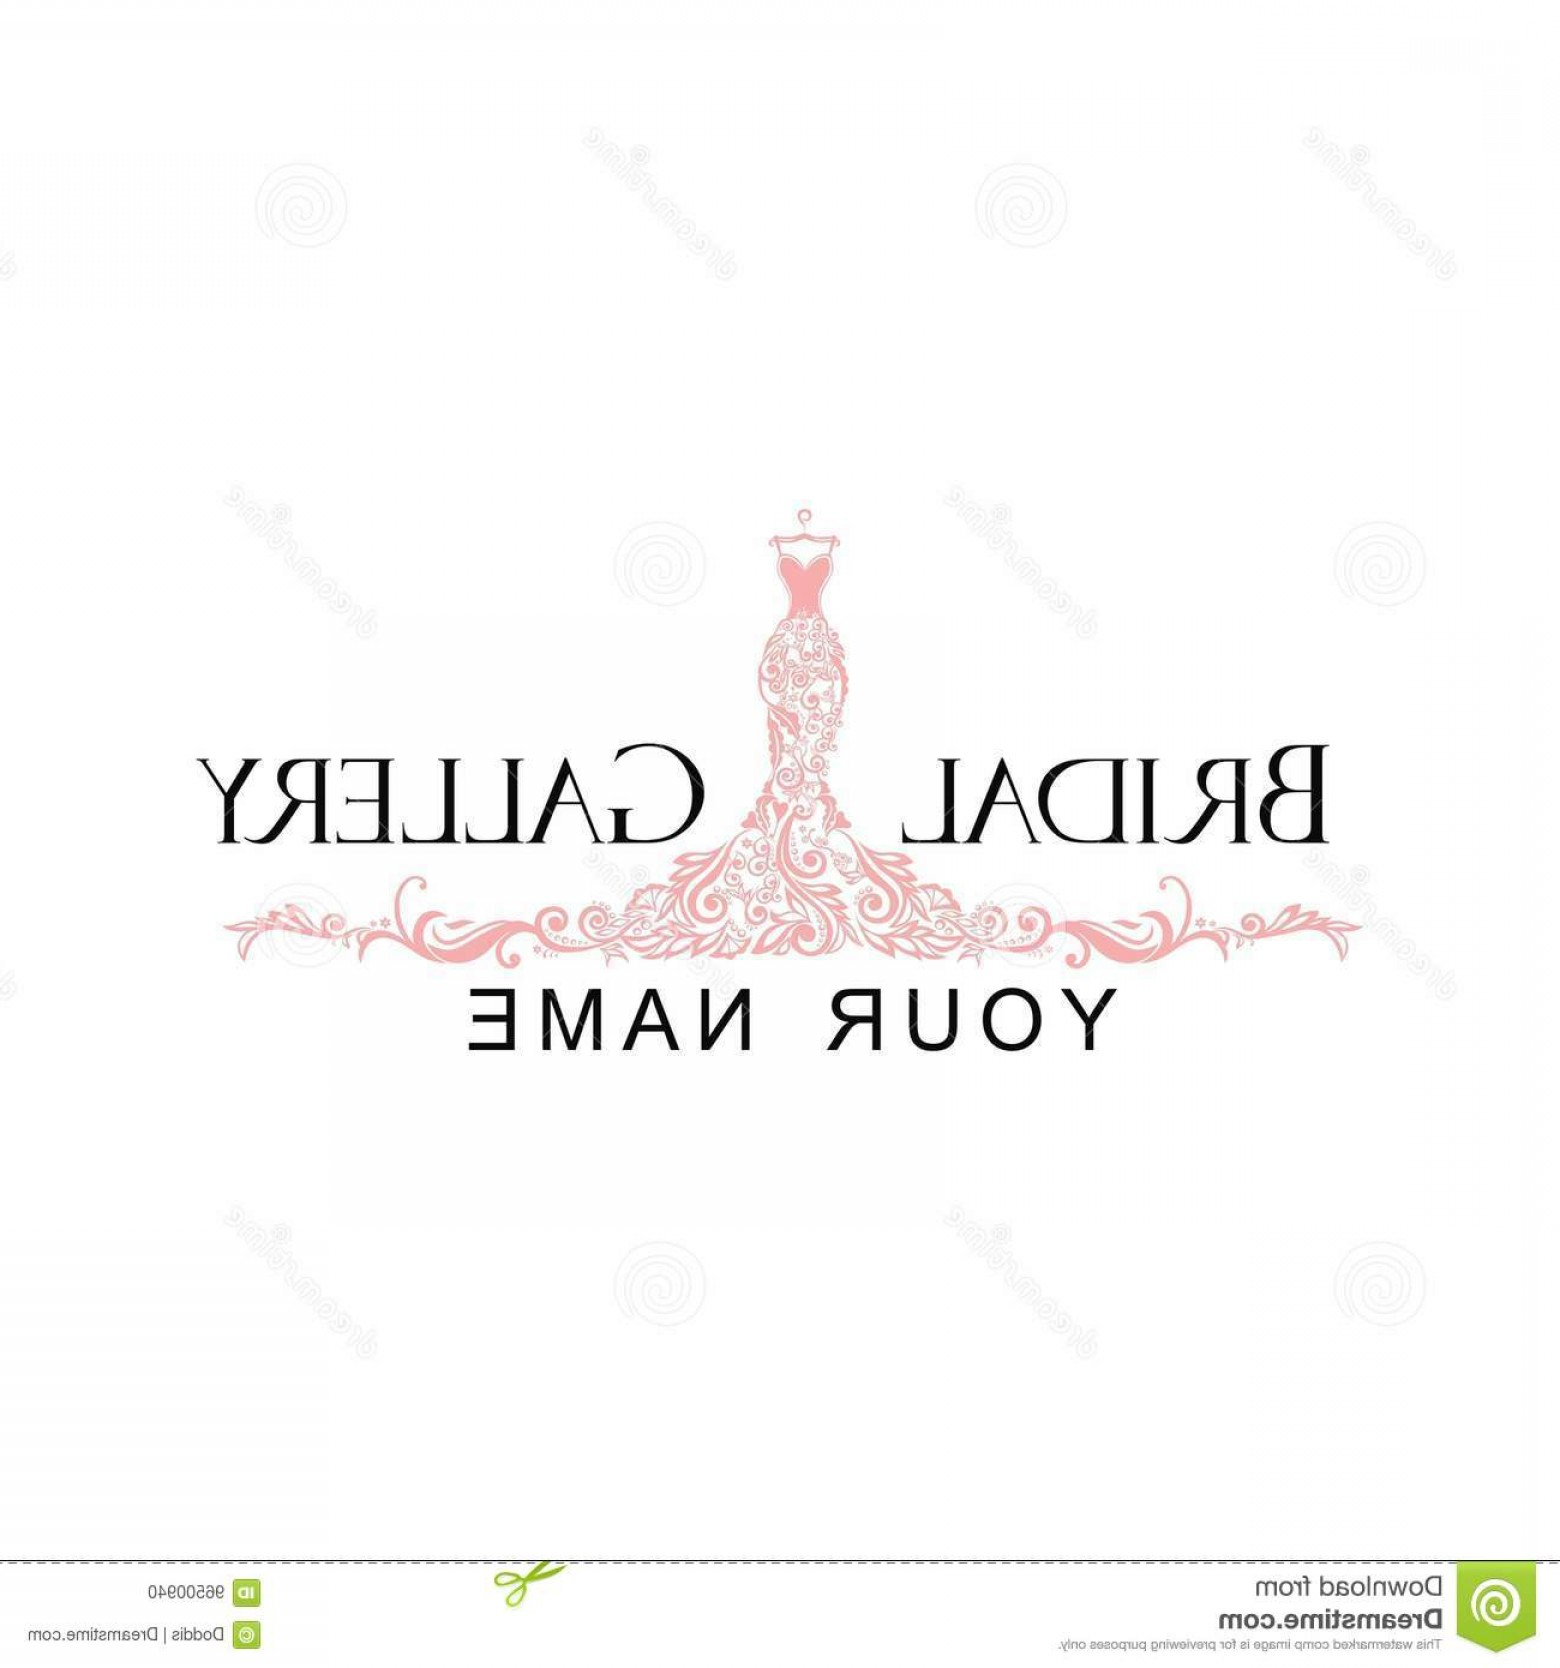 Vector Boutique: Stock Illustration Dress Boutique Bridal Logo Illustration Vector Design Template Image